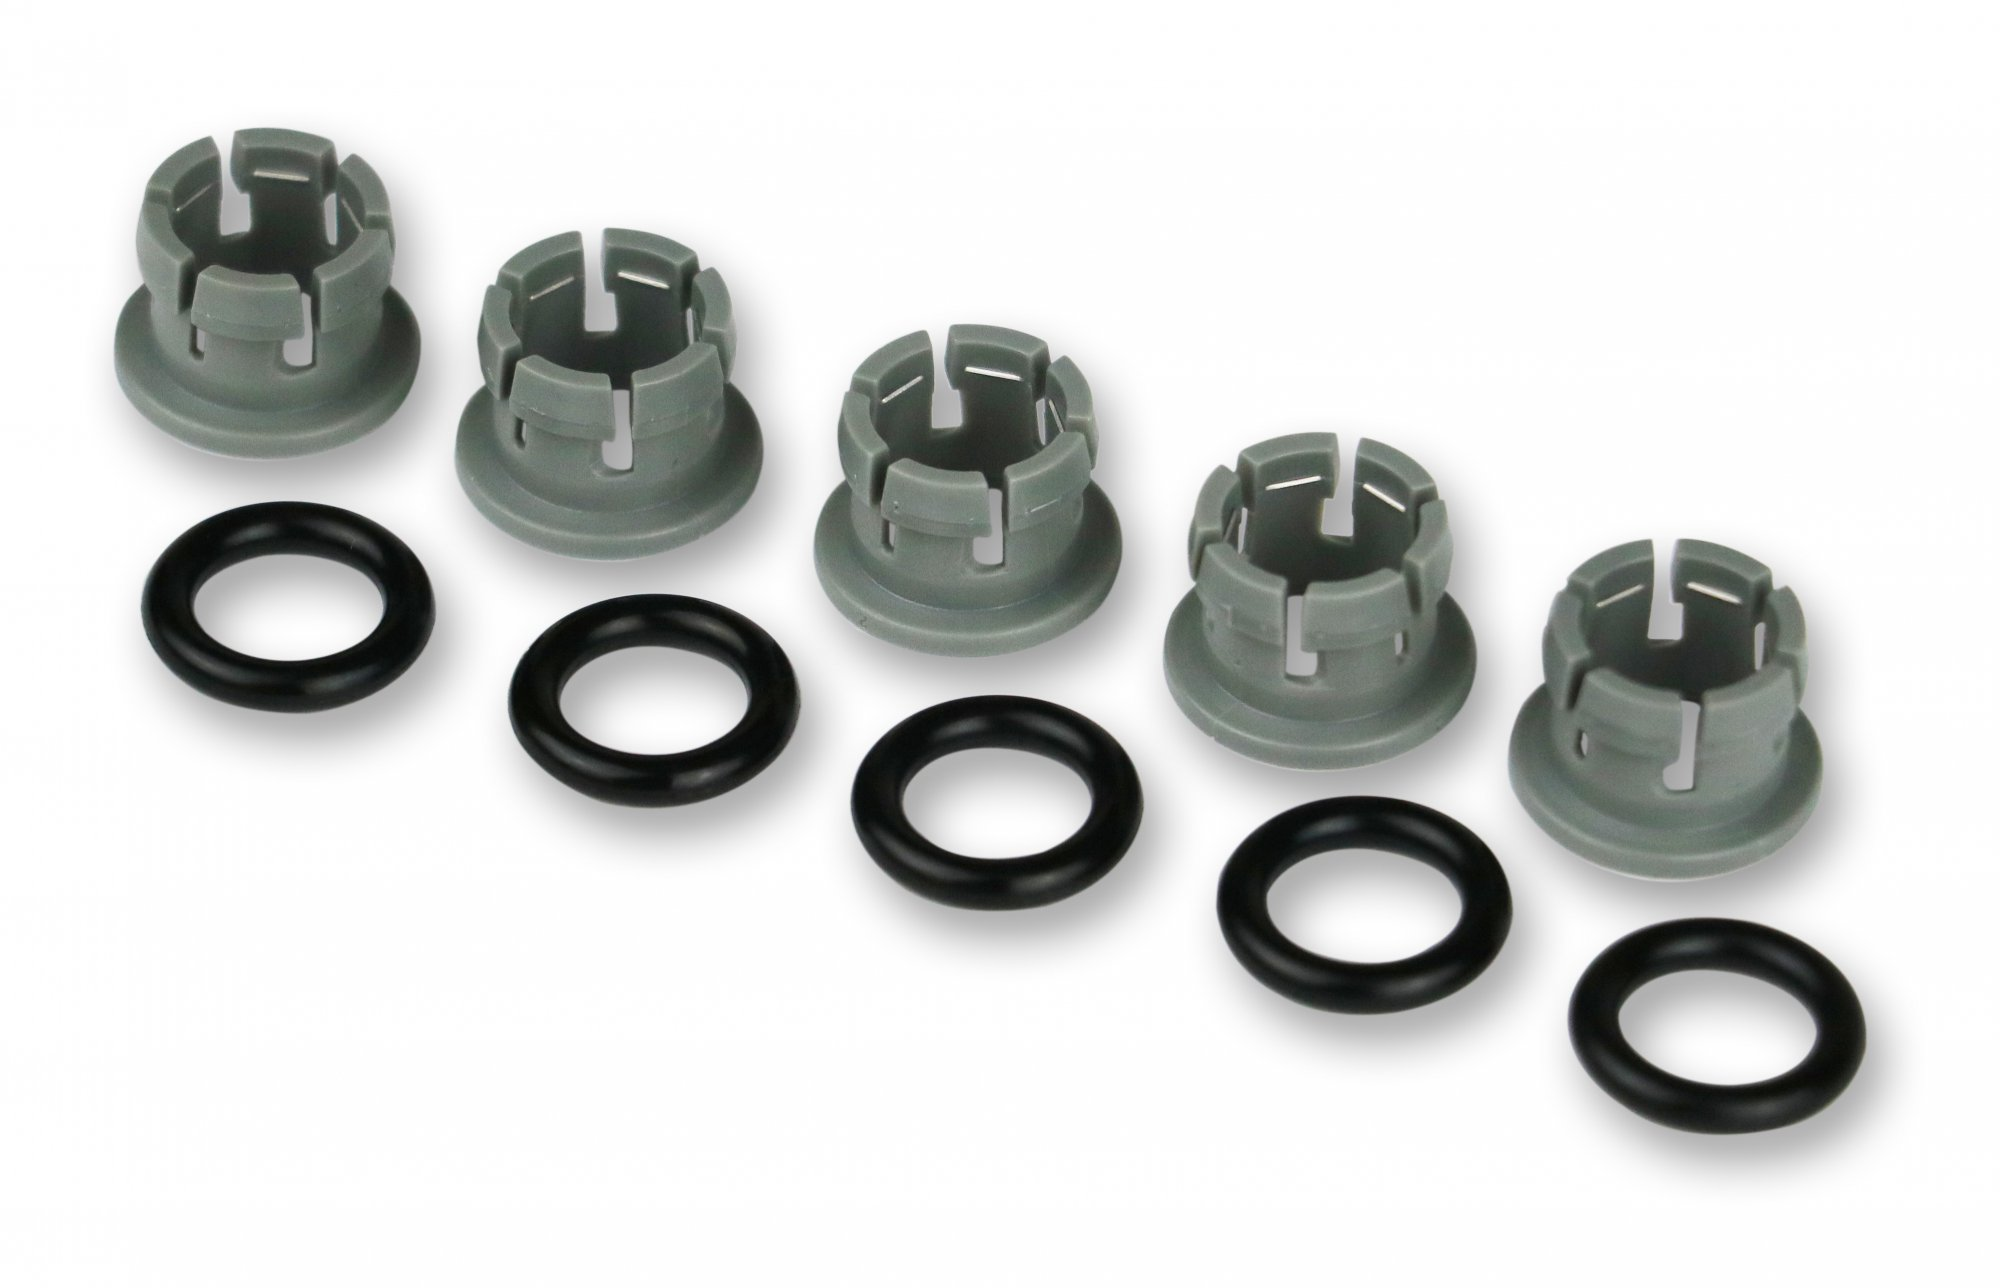 Collars & O-rings f/ Push-in Fittings, 5-pk (Col-5)